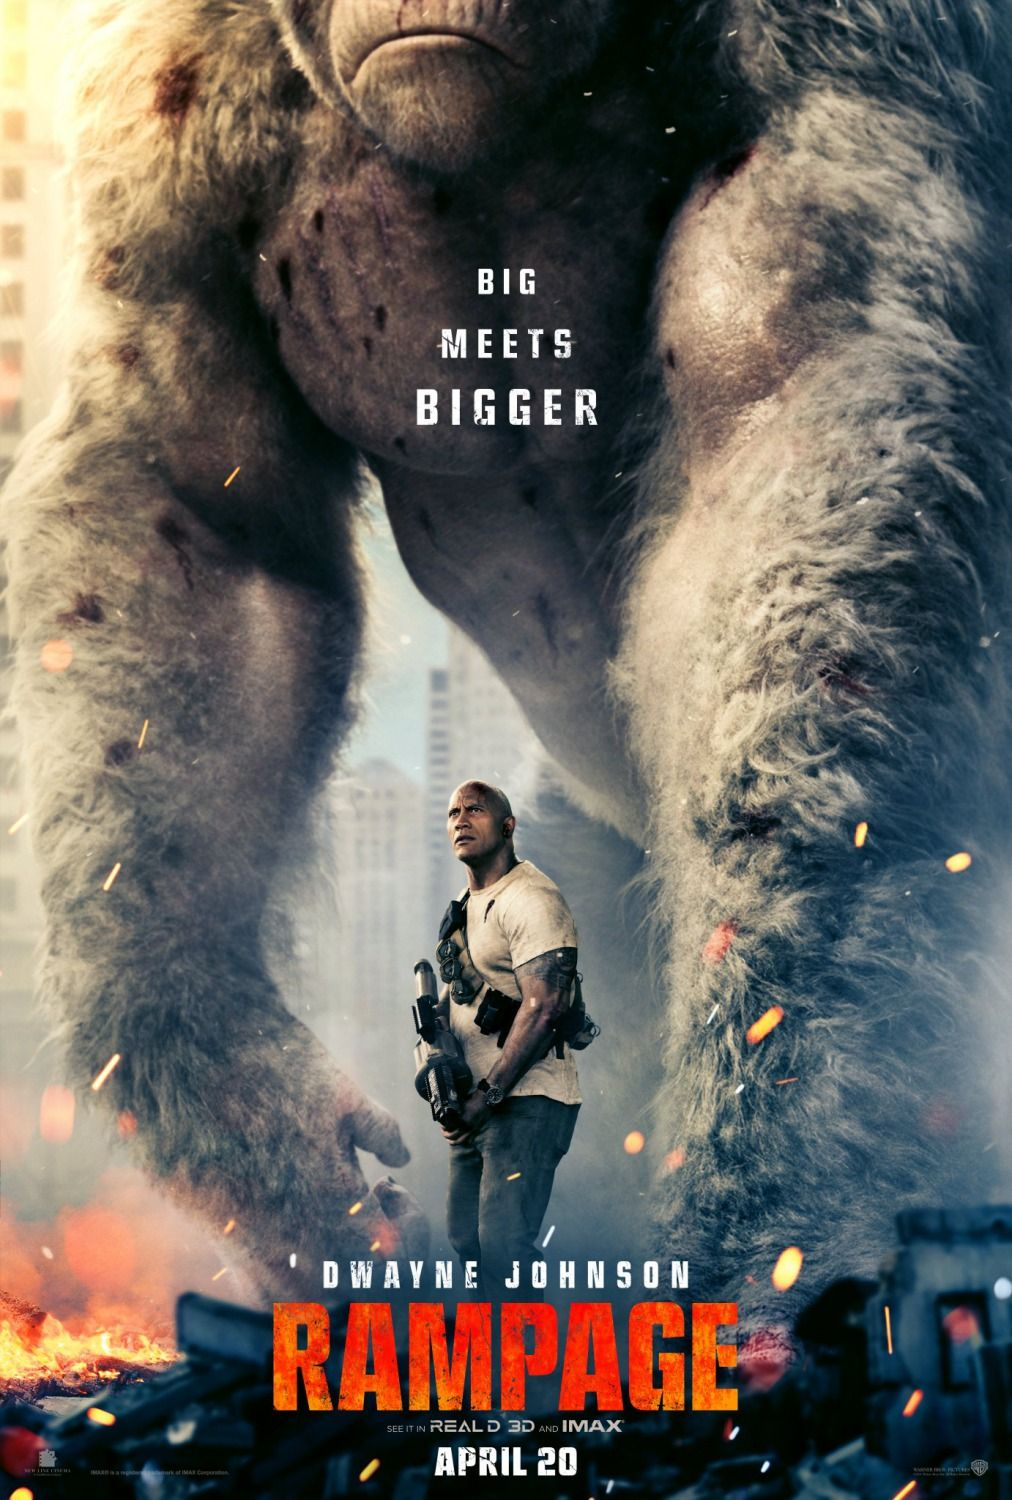 Image result for rampage movie poster hd